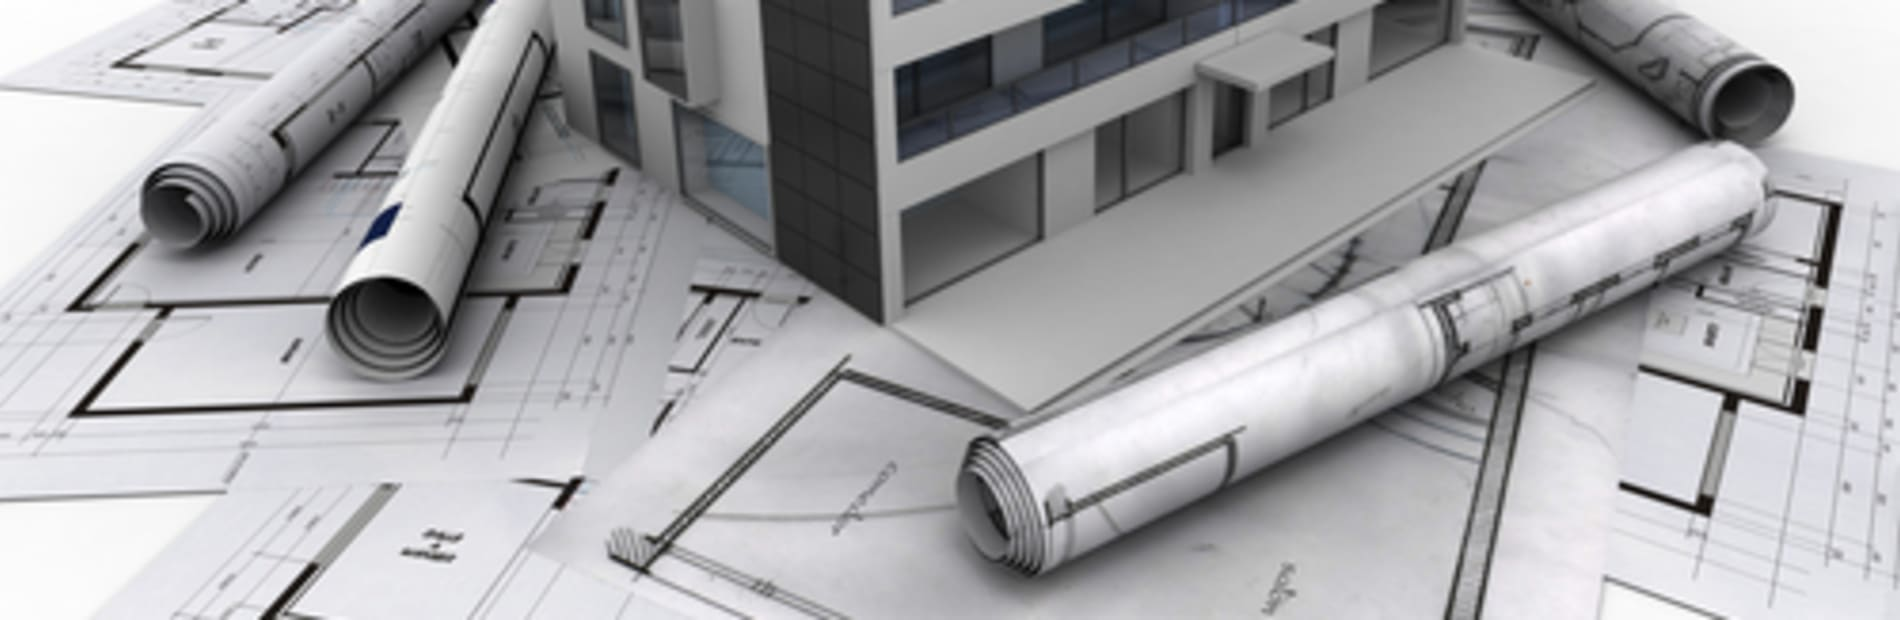 A paper building coming out of an architects drawing, surrounded by other designs and blueprints.